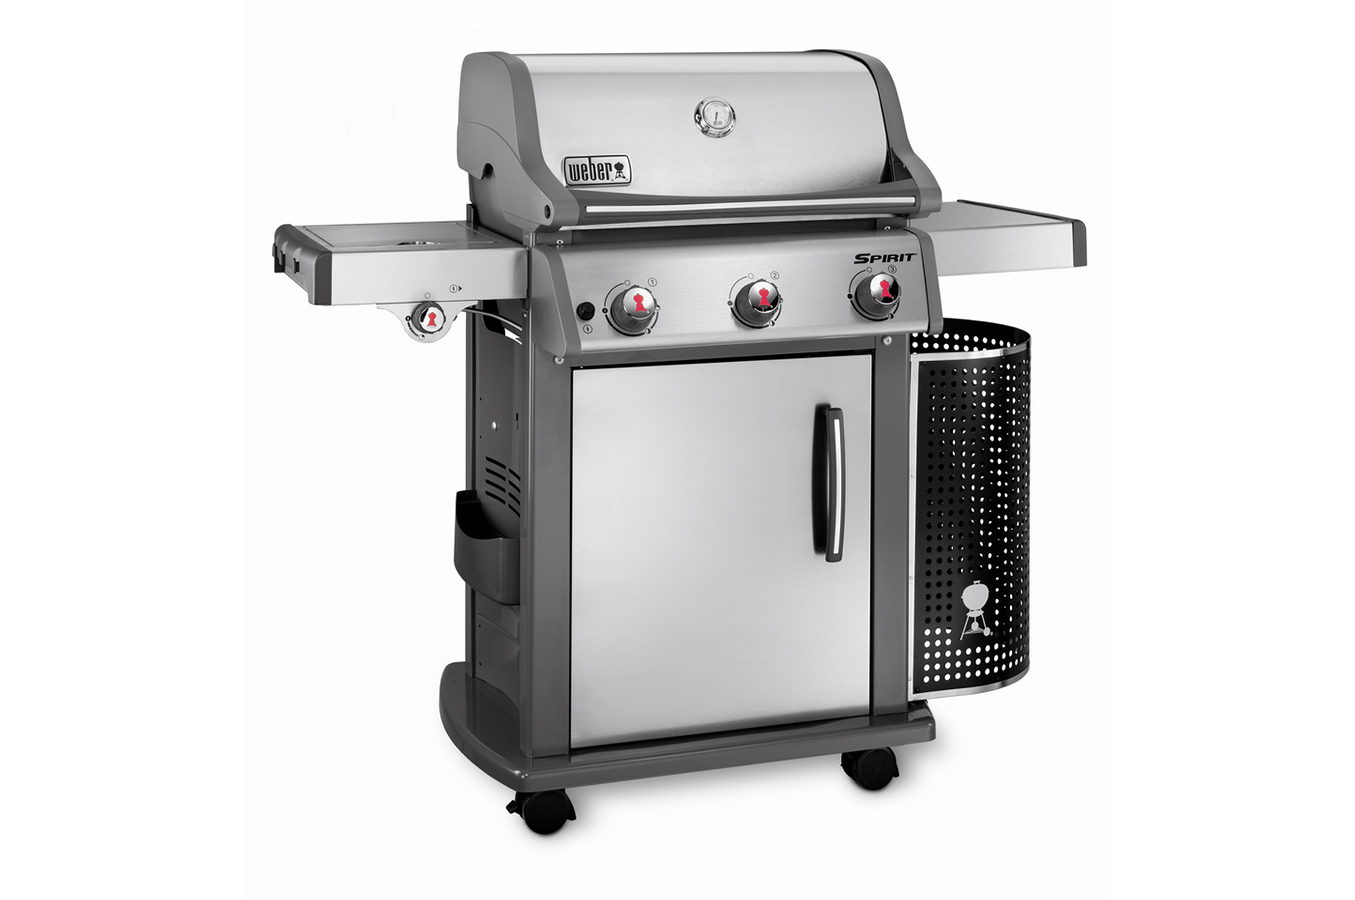 Barbecue americain weber spirit premium s320 2013 3676978 darty - Nettoyage grille barbecue weber ...